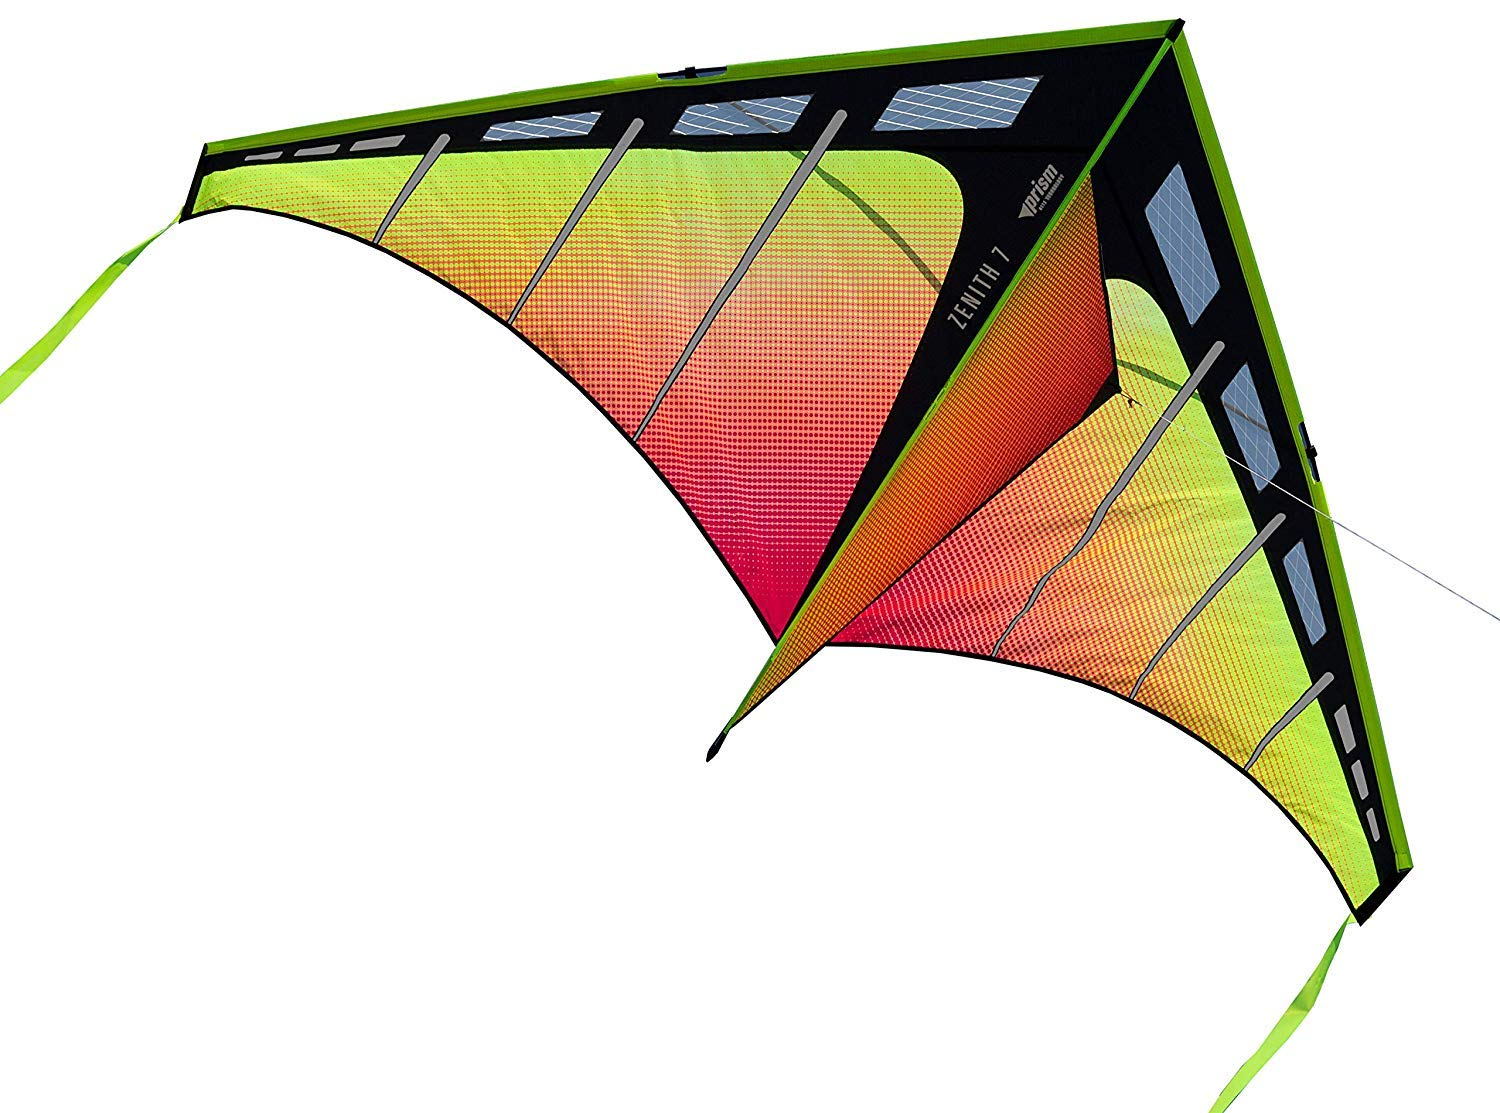 Prism Kite Technology Zenith 7 Infrared Single Line Kite, Ready to Fly with line, Winder and Travel Sleeve by Prism Kite Technology